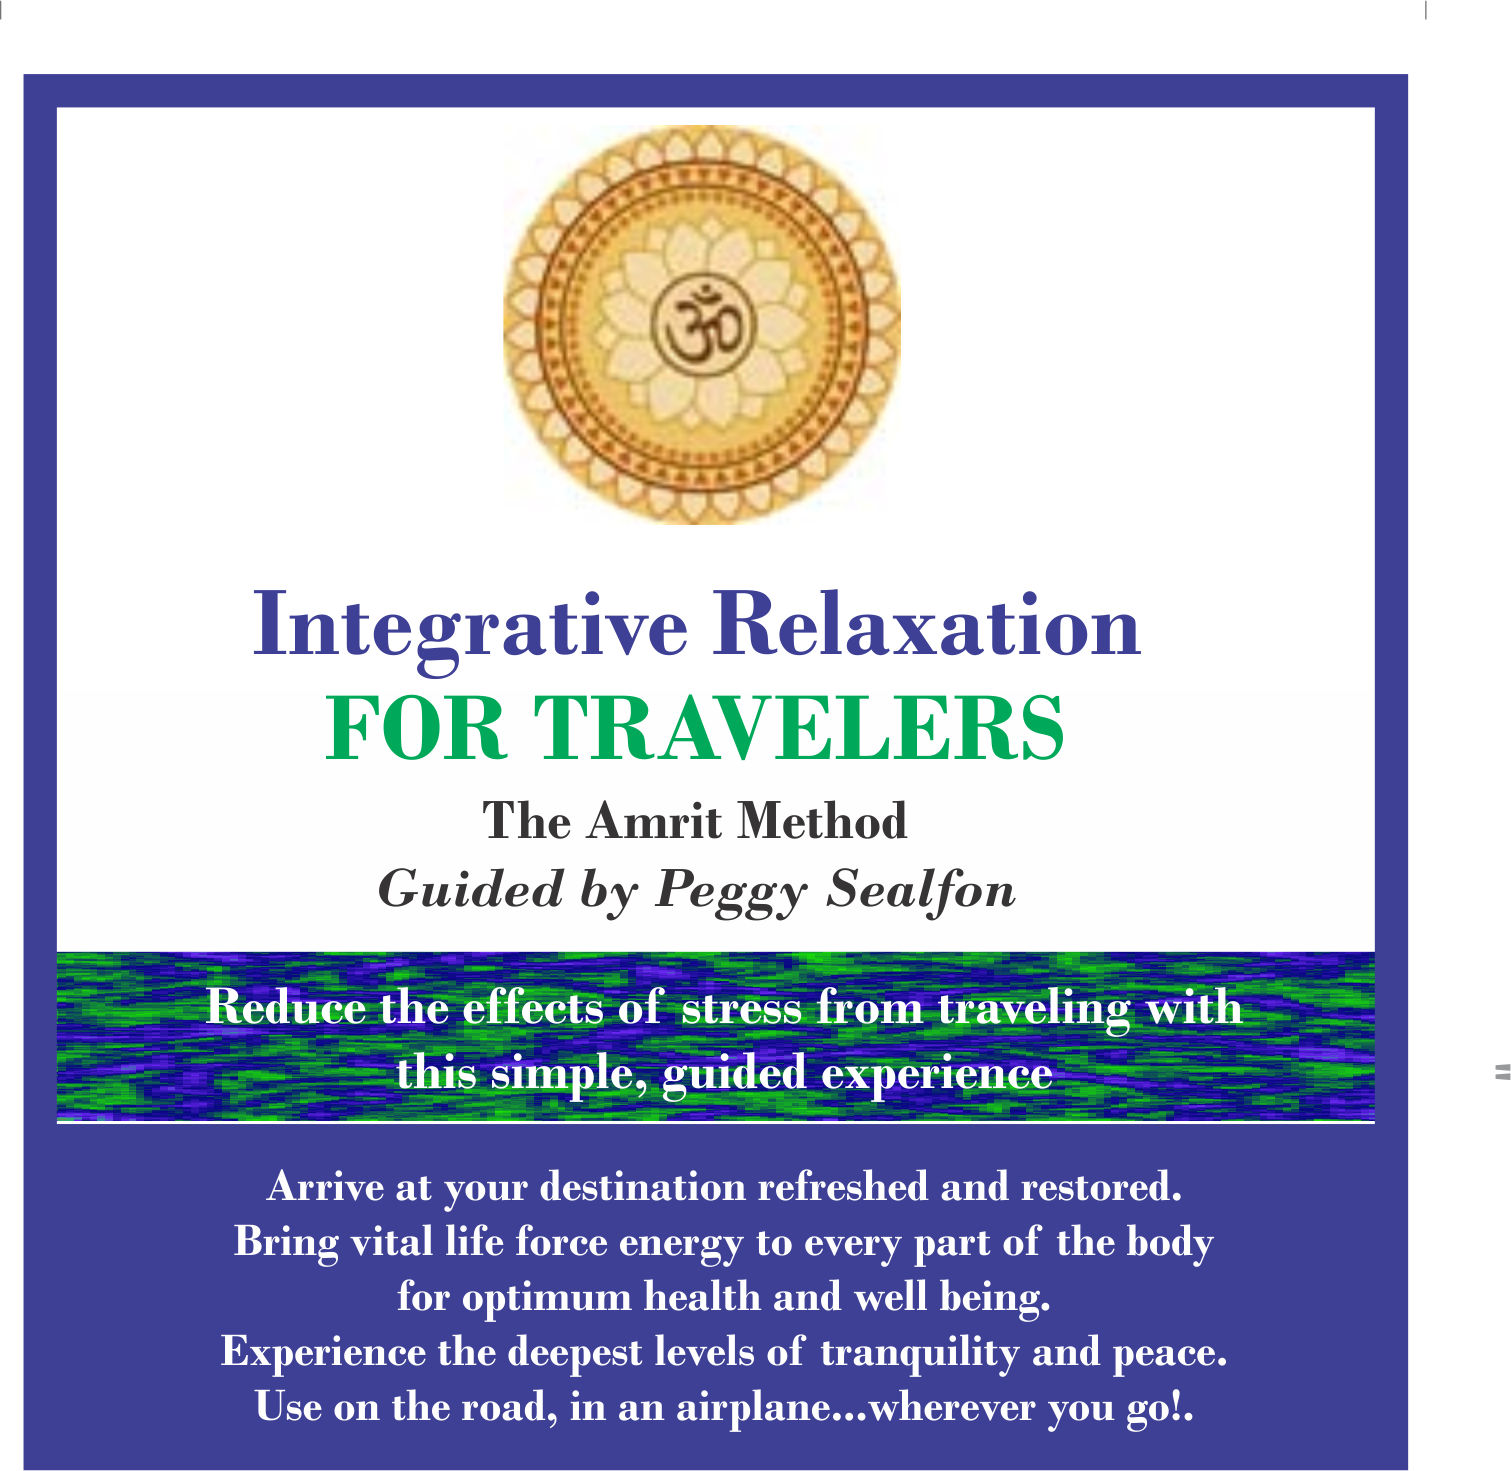 Integrative Relaxation for Travelers (downloadable)